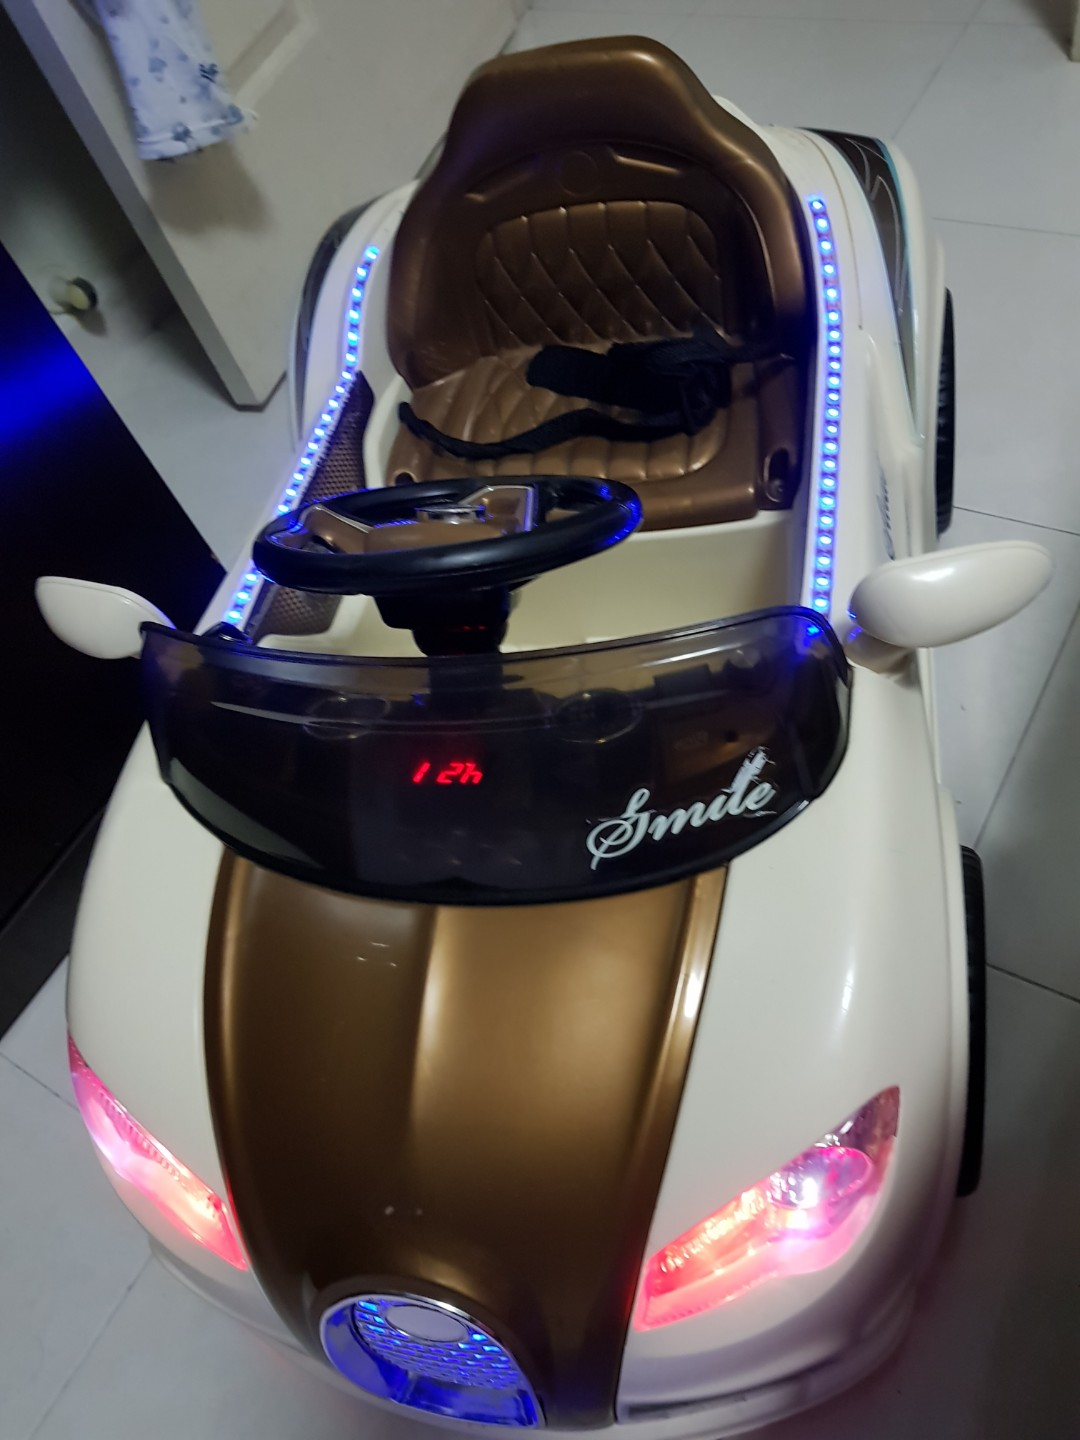 Kid's Electric Car Article Image